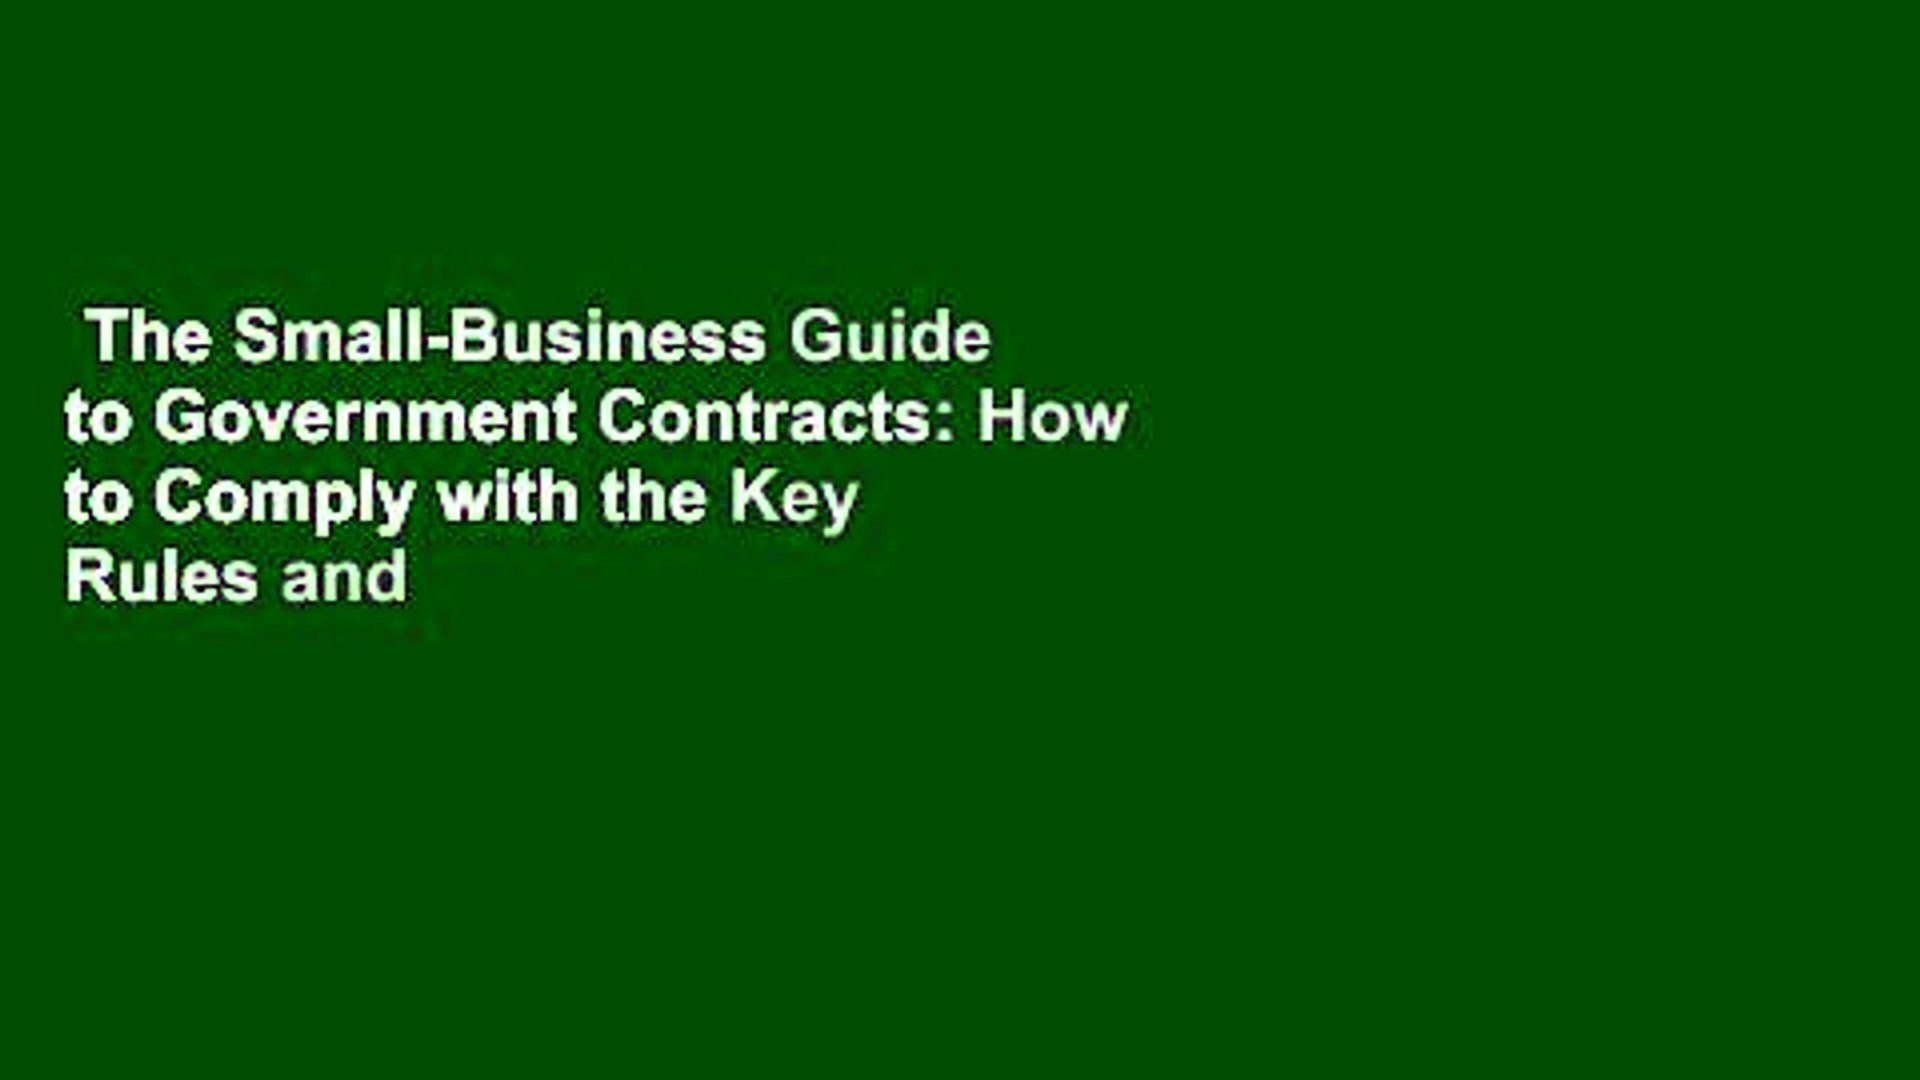 The Small-Business Guide to Government Contracts: How to Comply with the Key Rules and